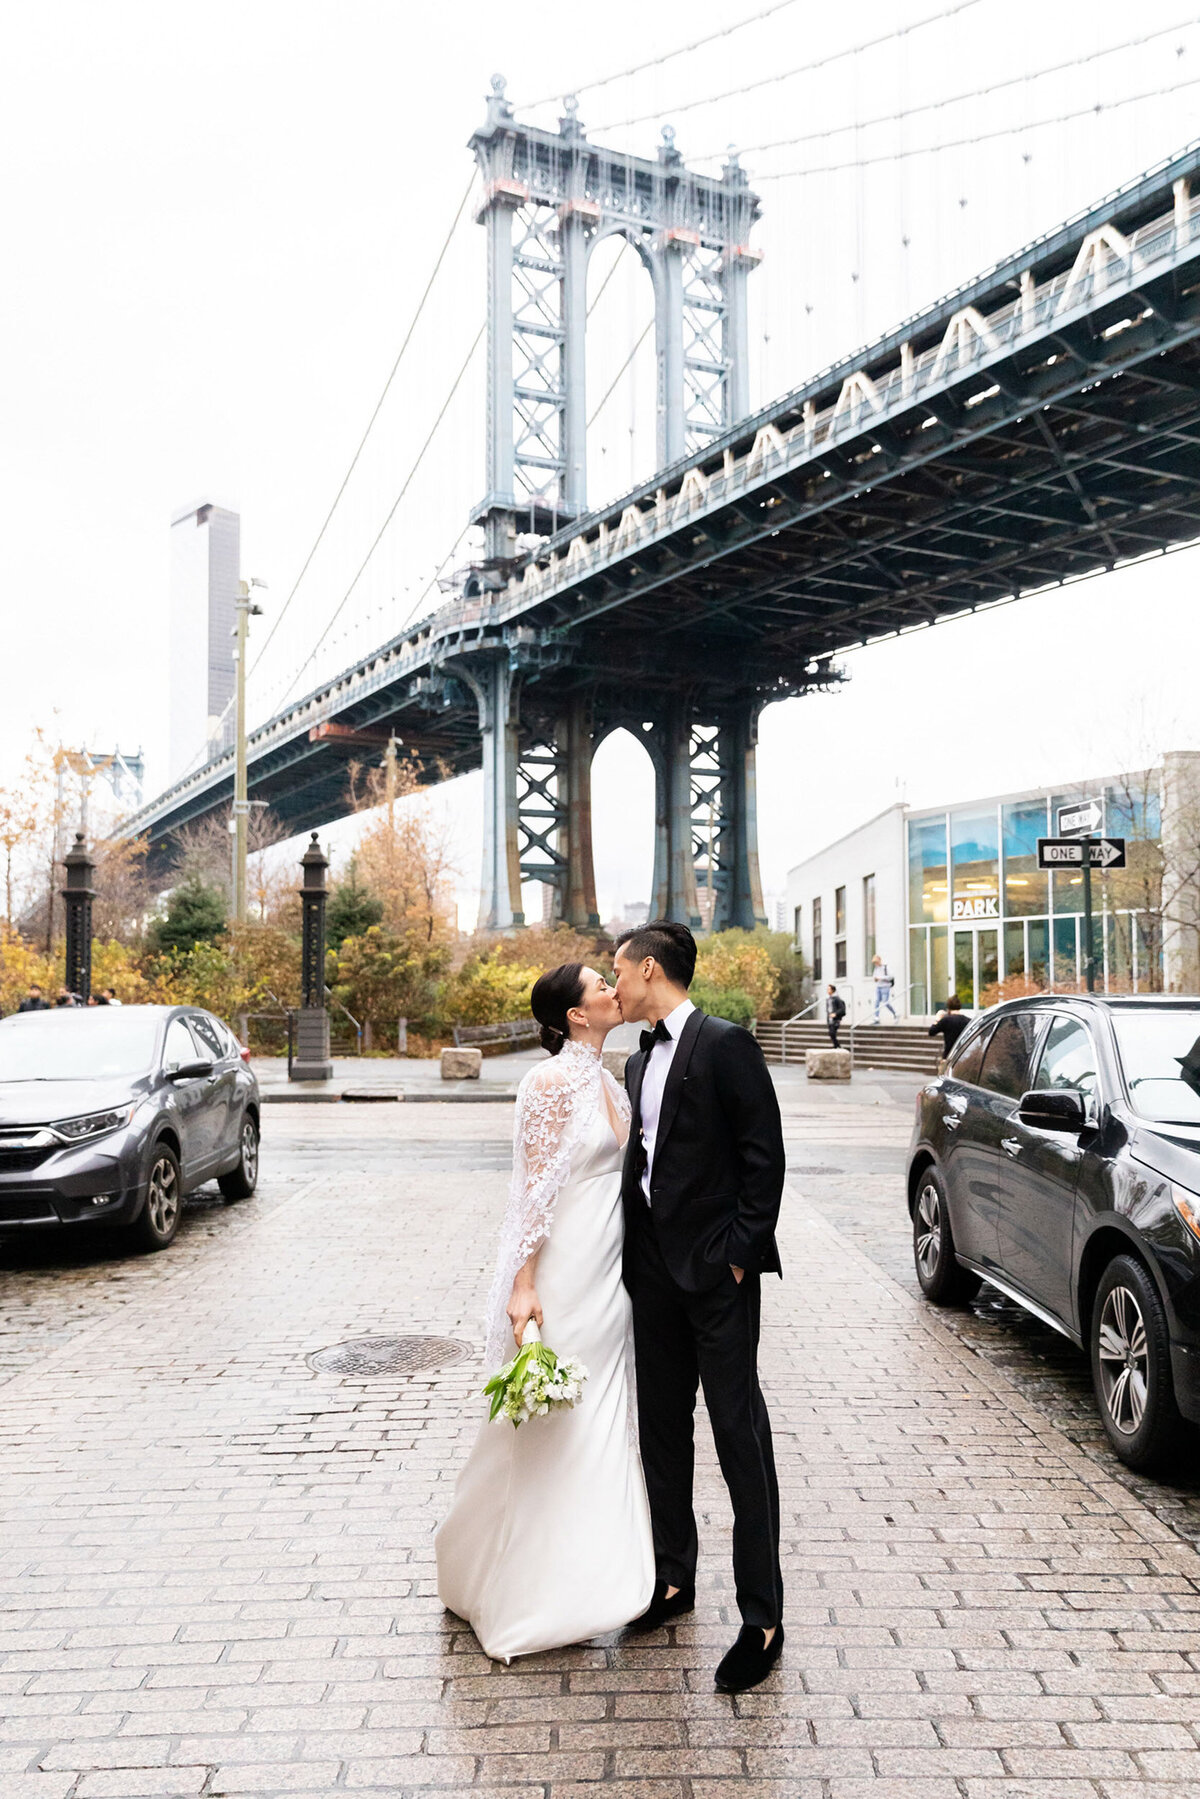 Dumbo_Loft_0236_Cate_Bryan_Wedding_1549